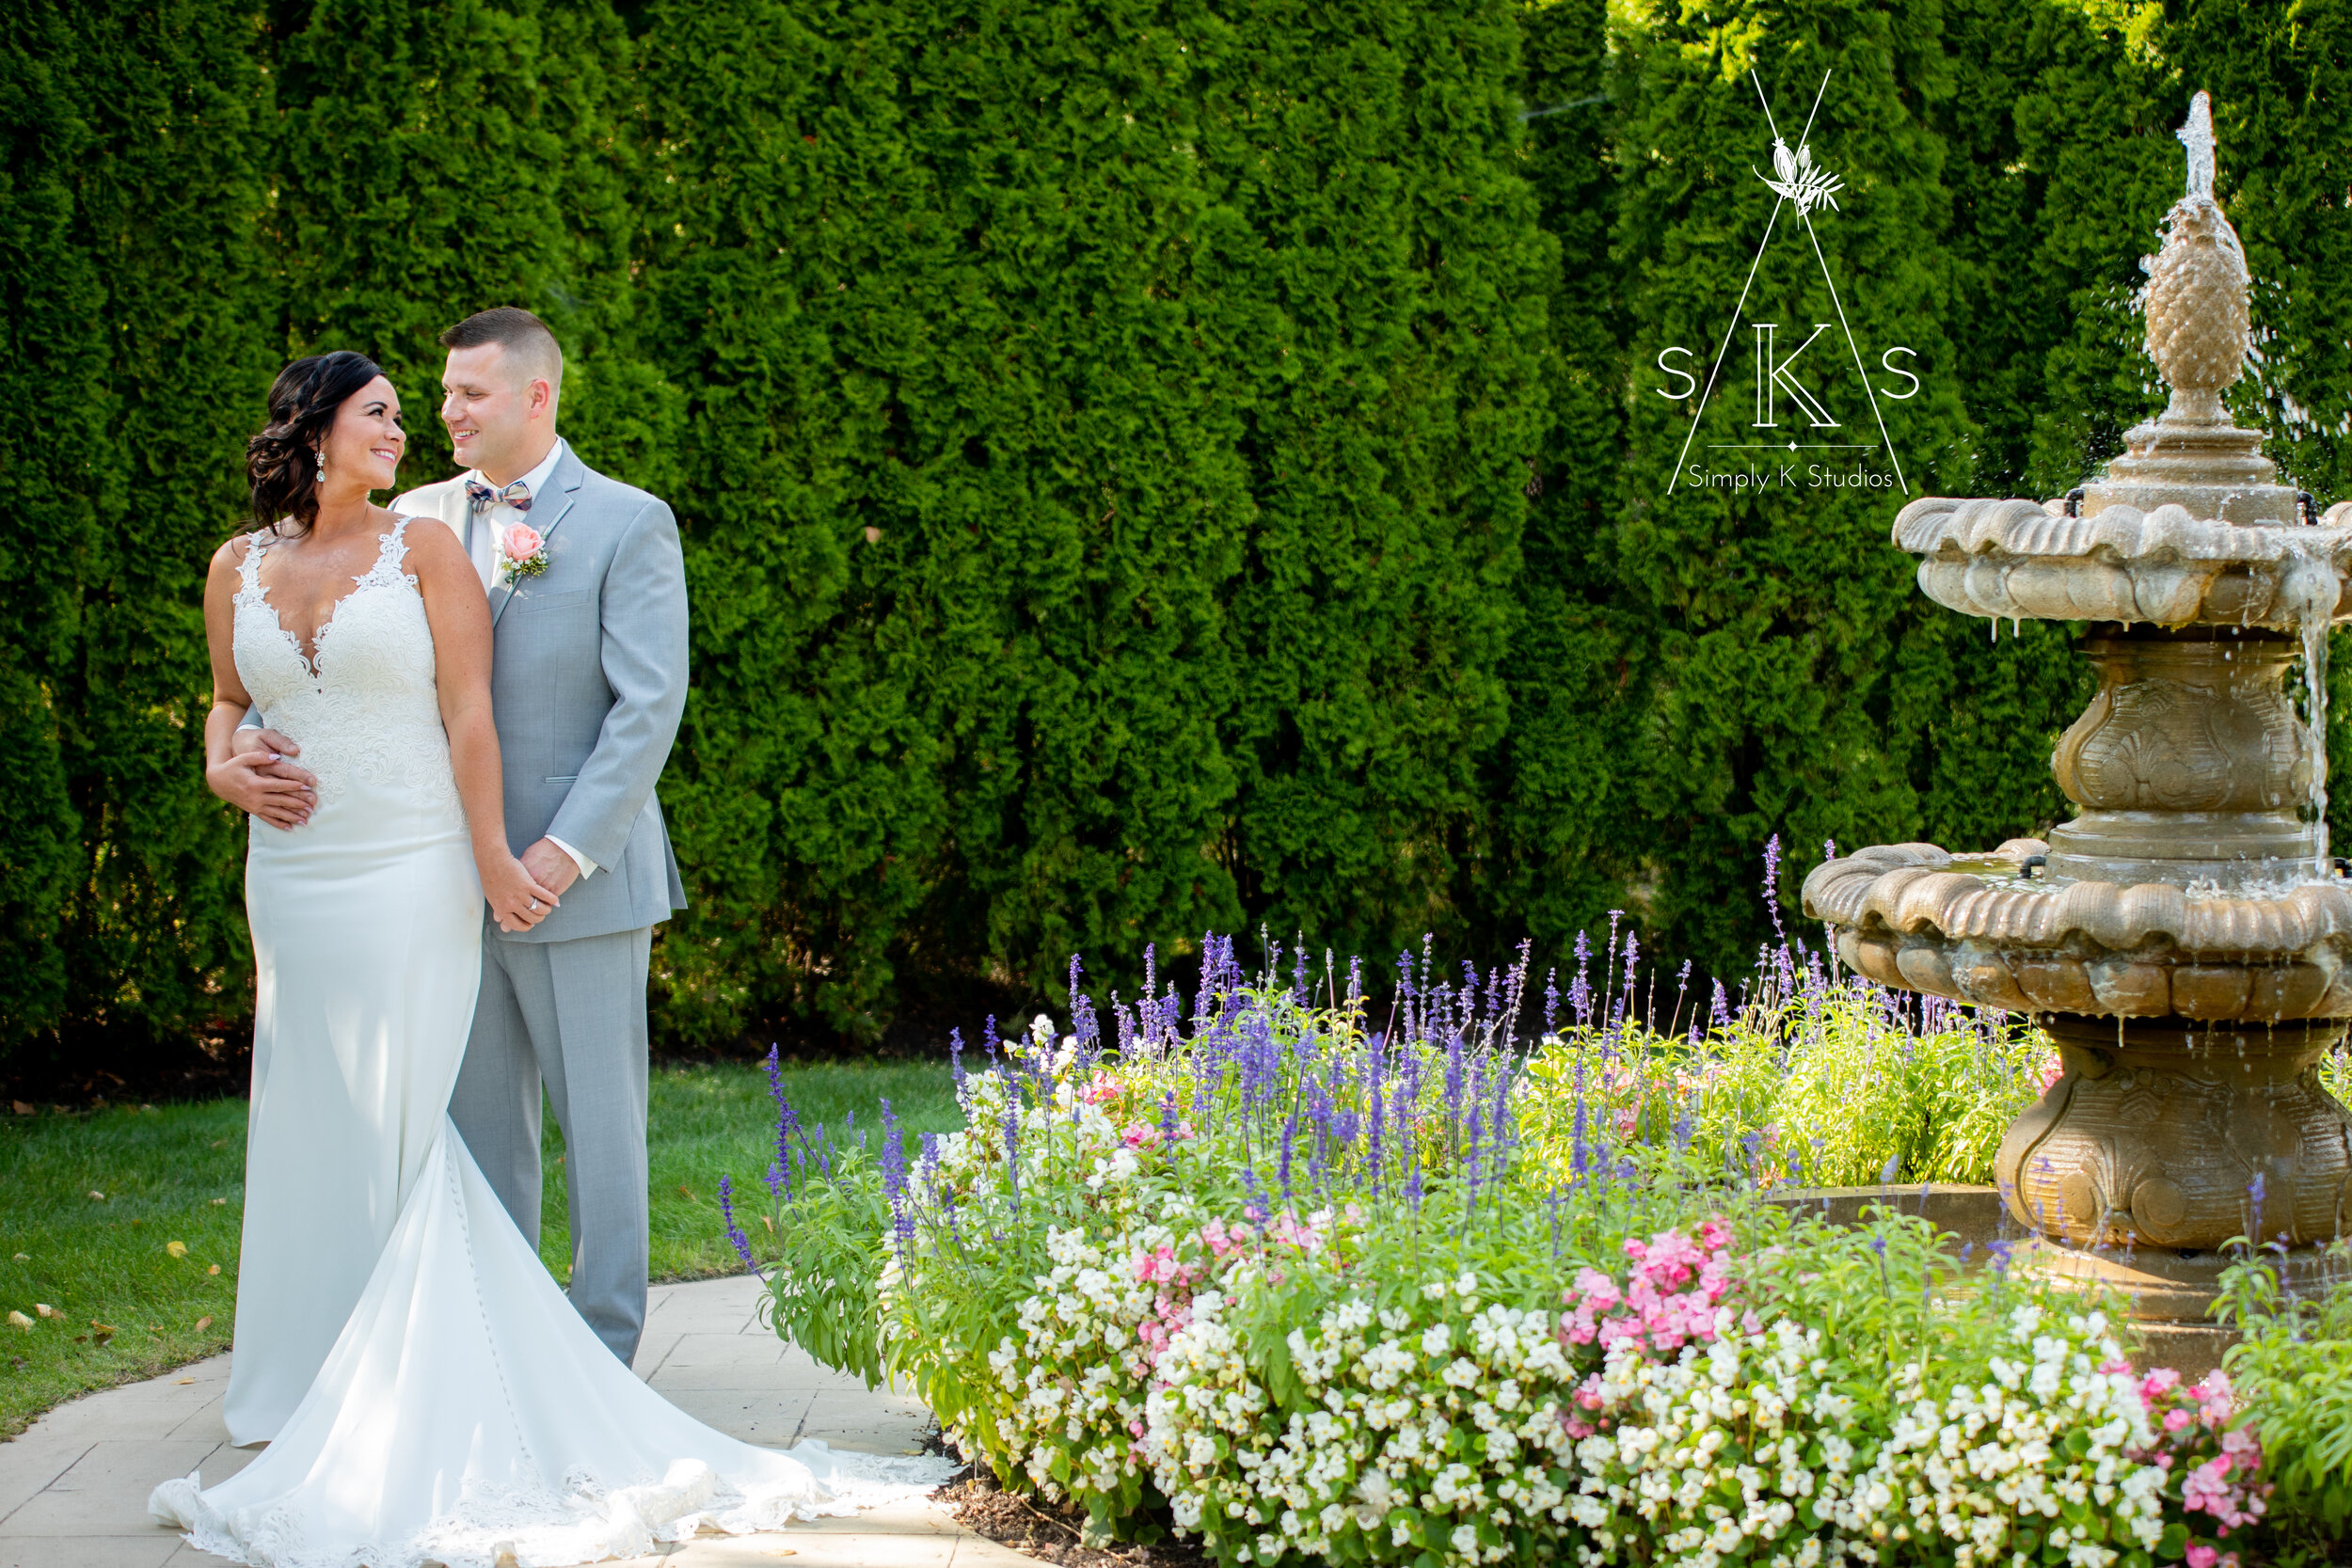 bride and groom by fountain